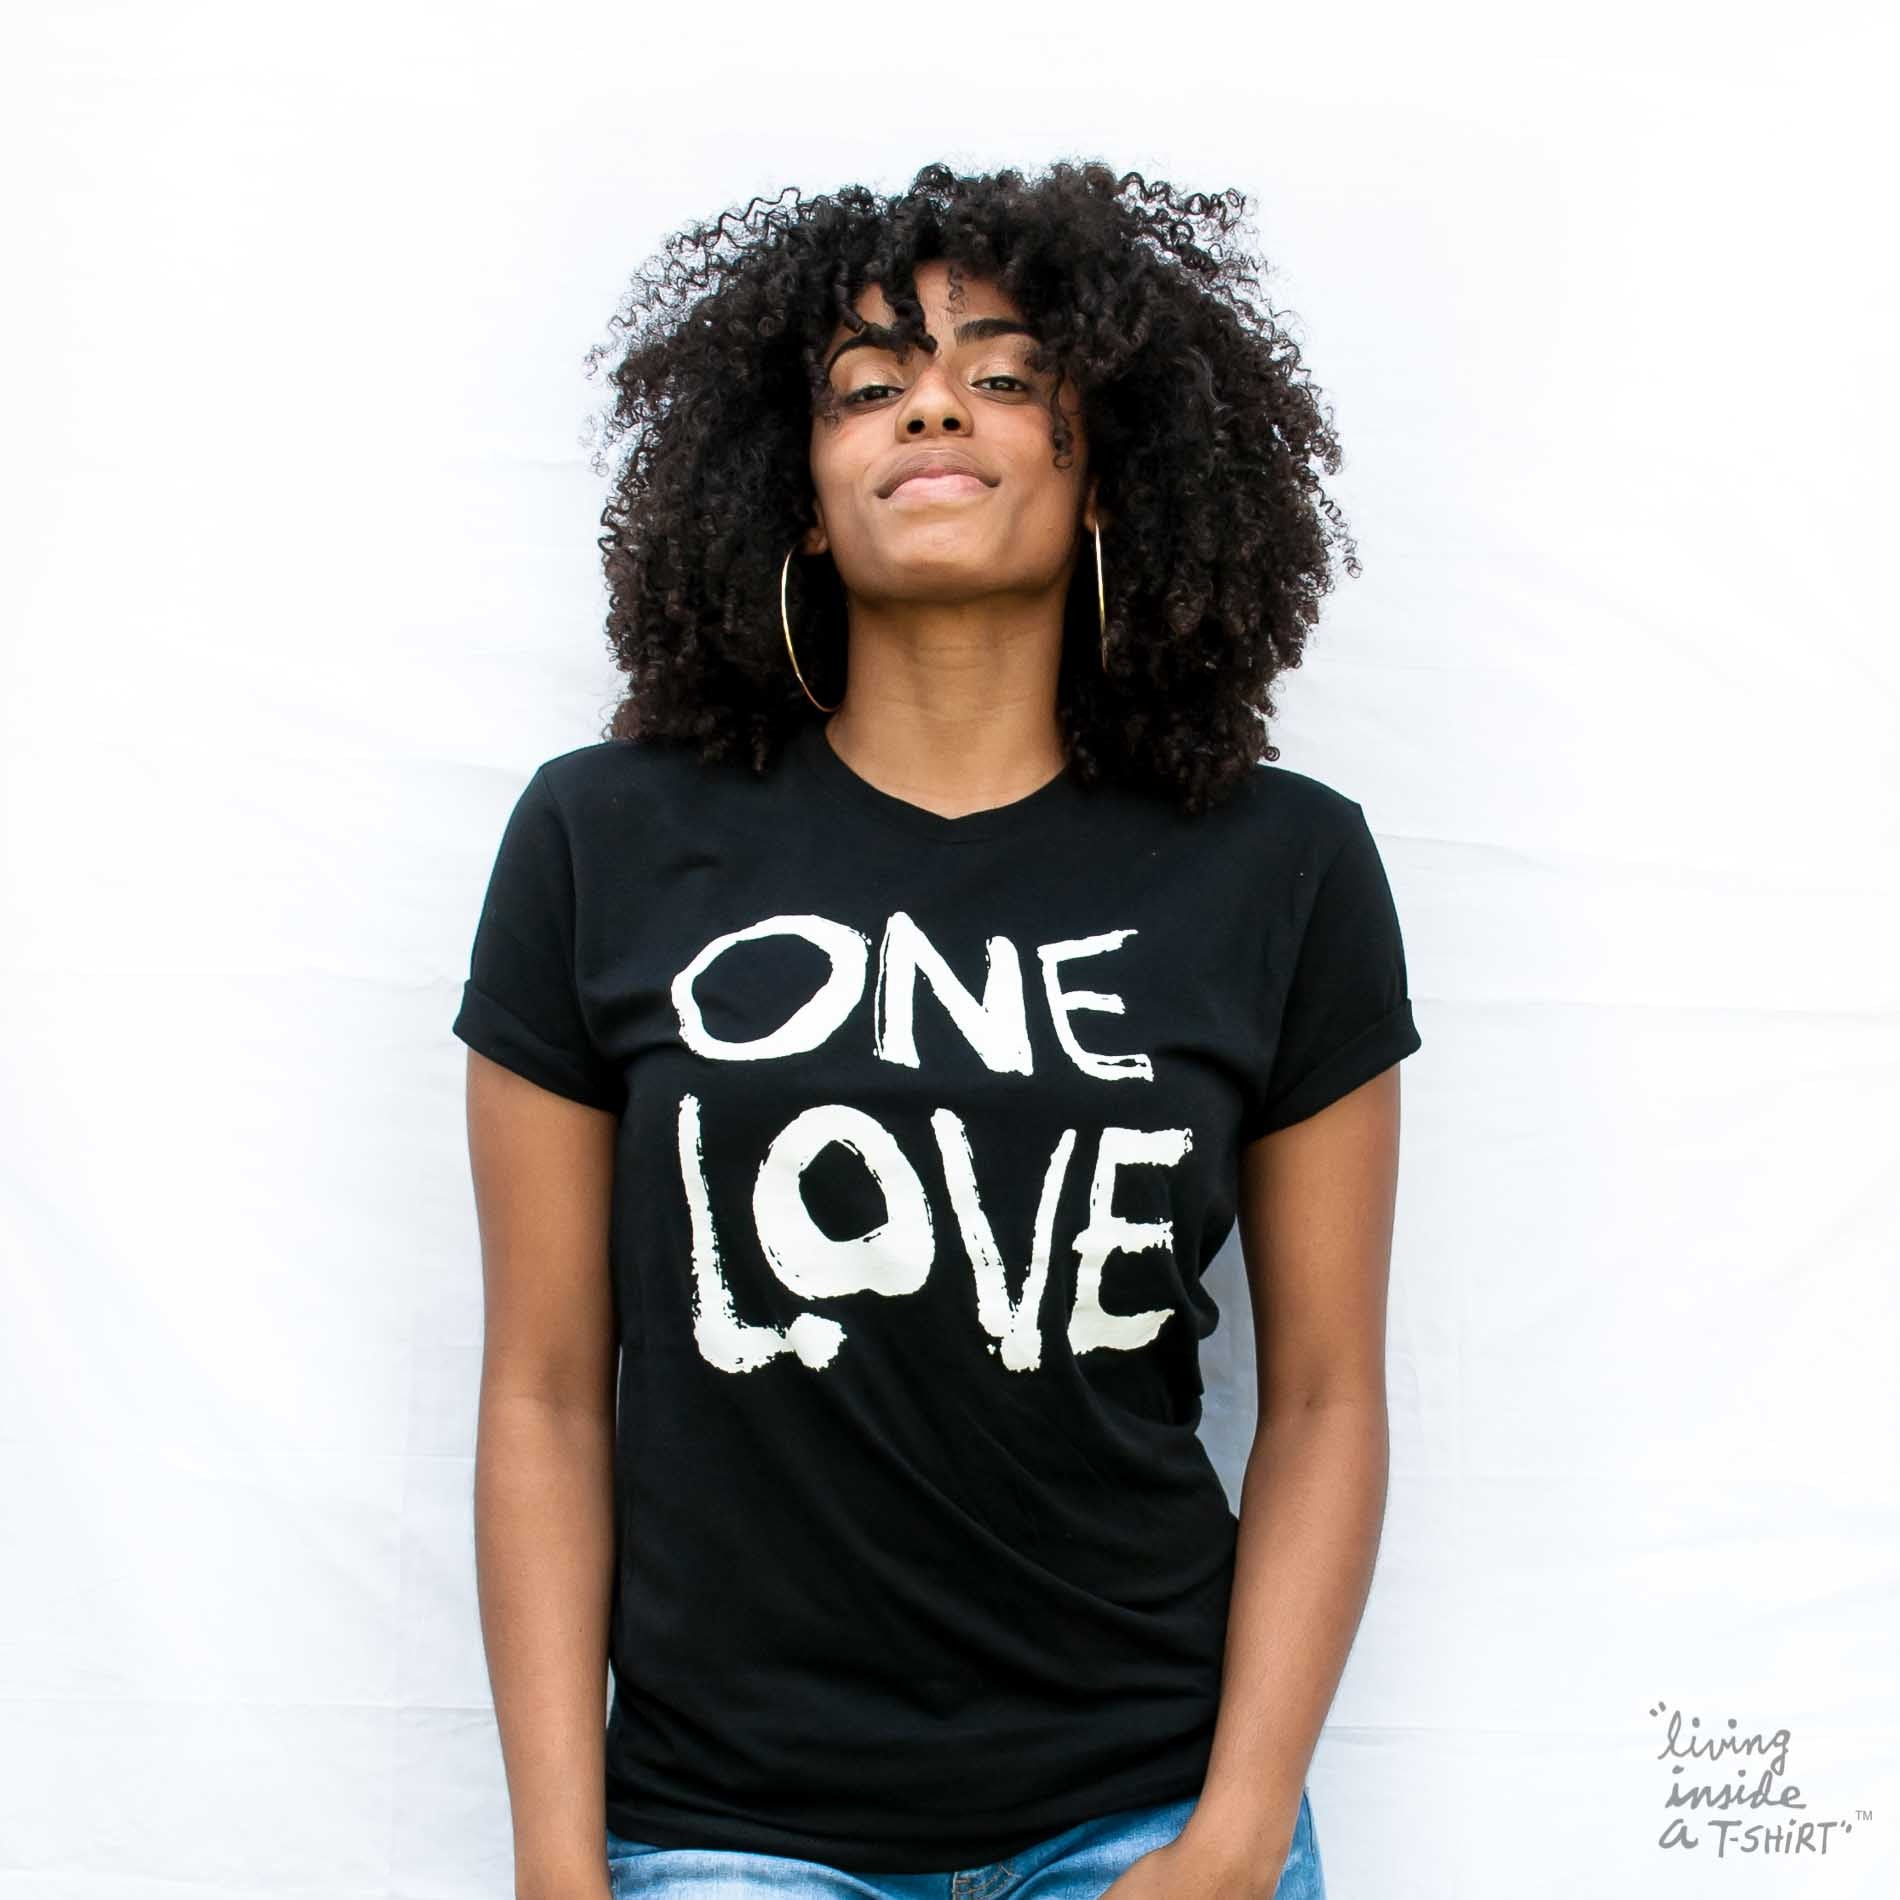 One Love - Unisex T-shirt